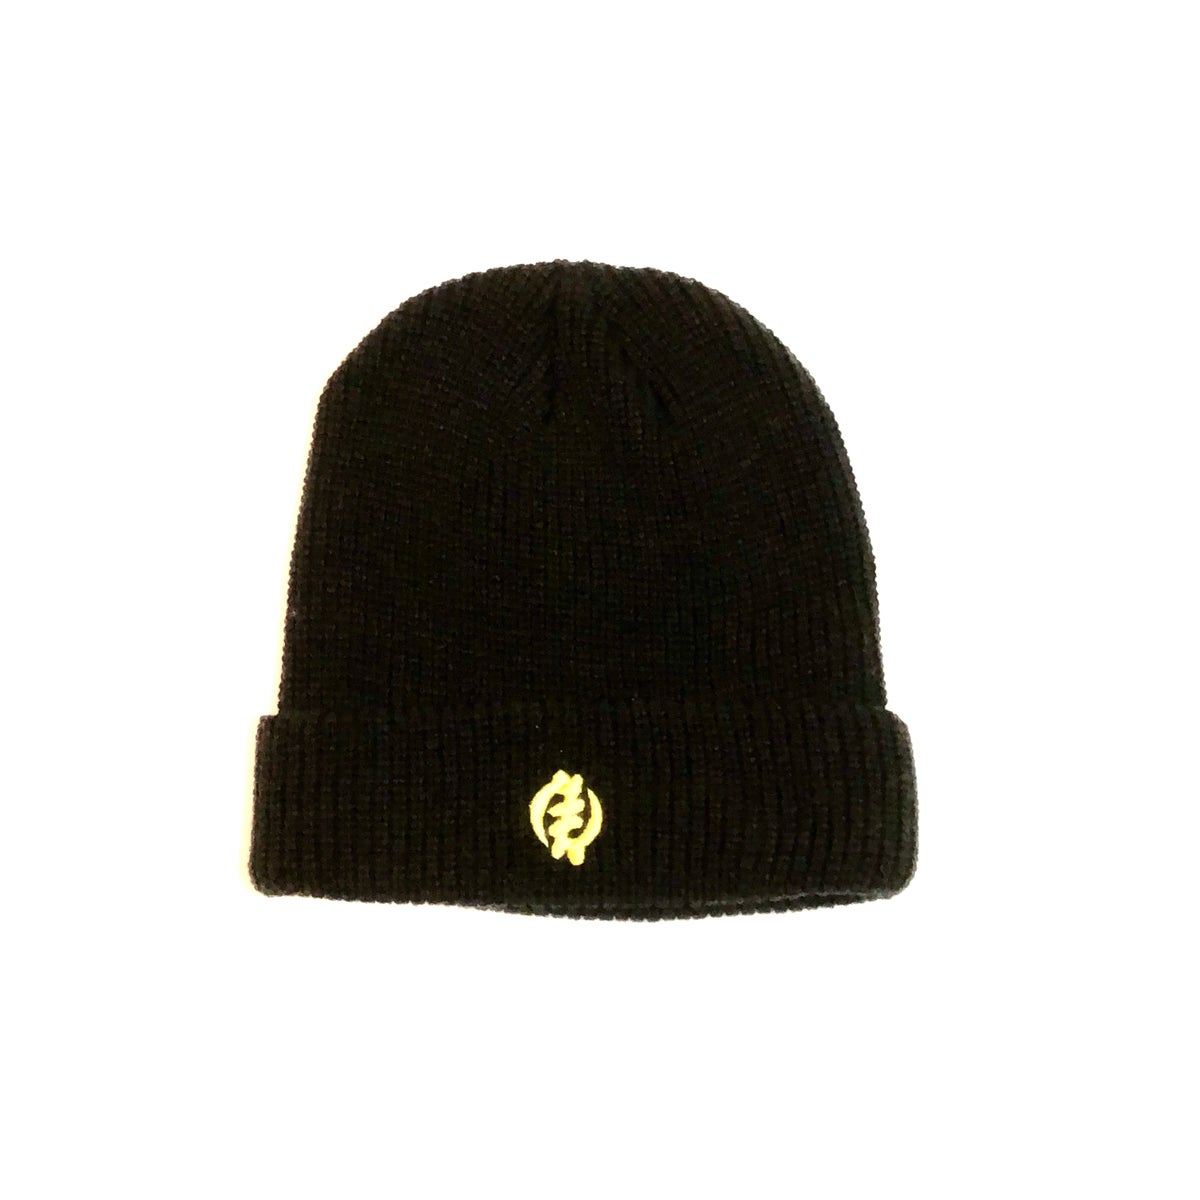 Image of Villi'age Winter Beanies